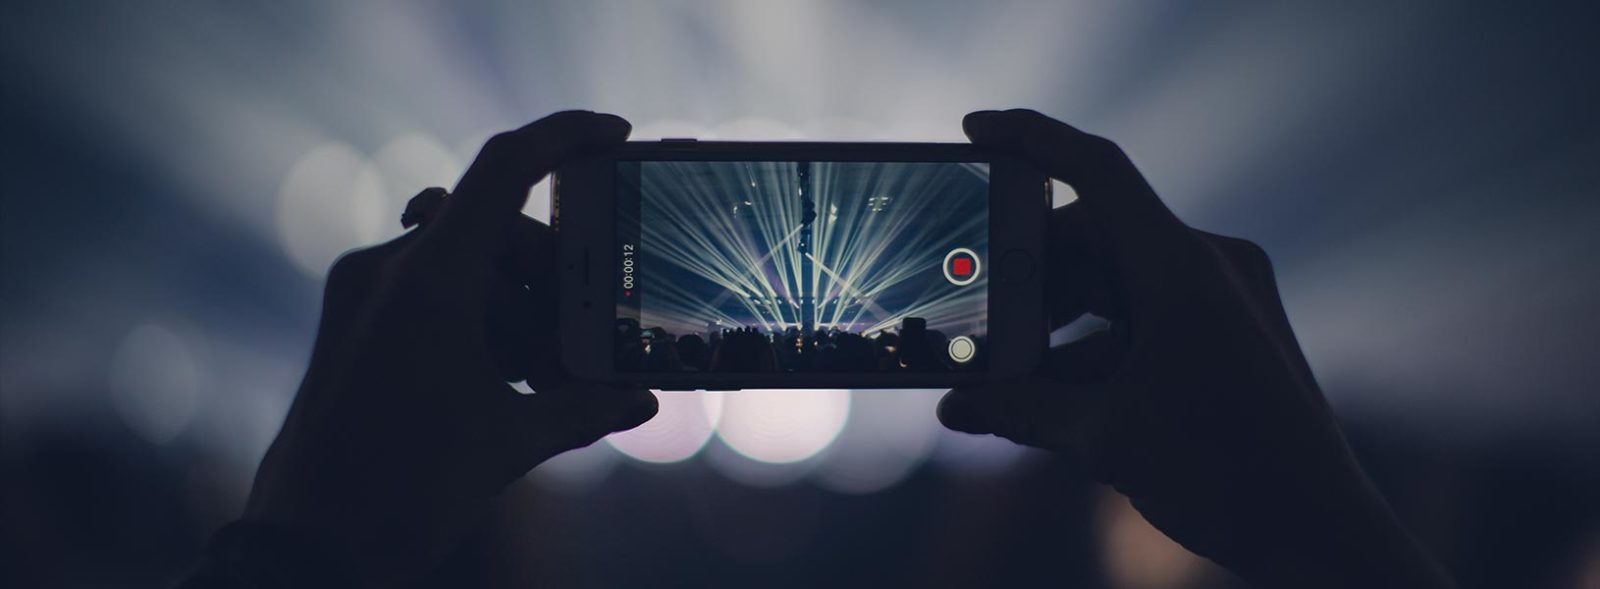 smartphone recording video at concert